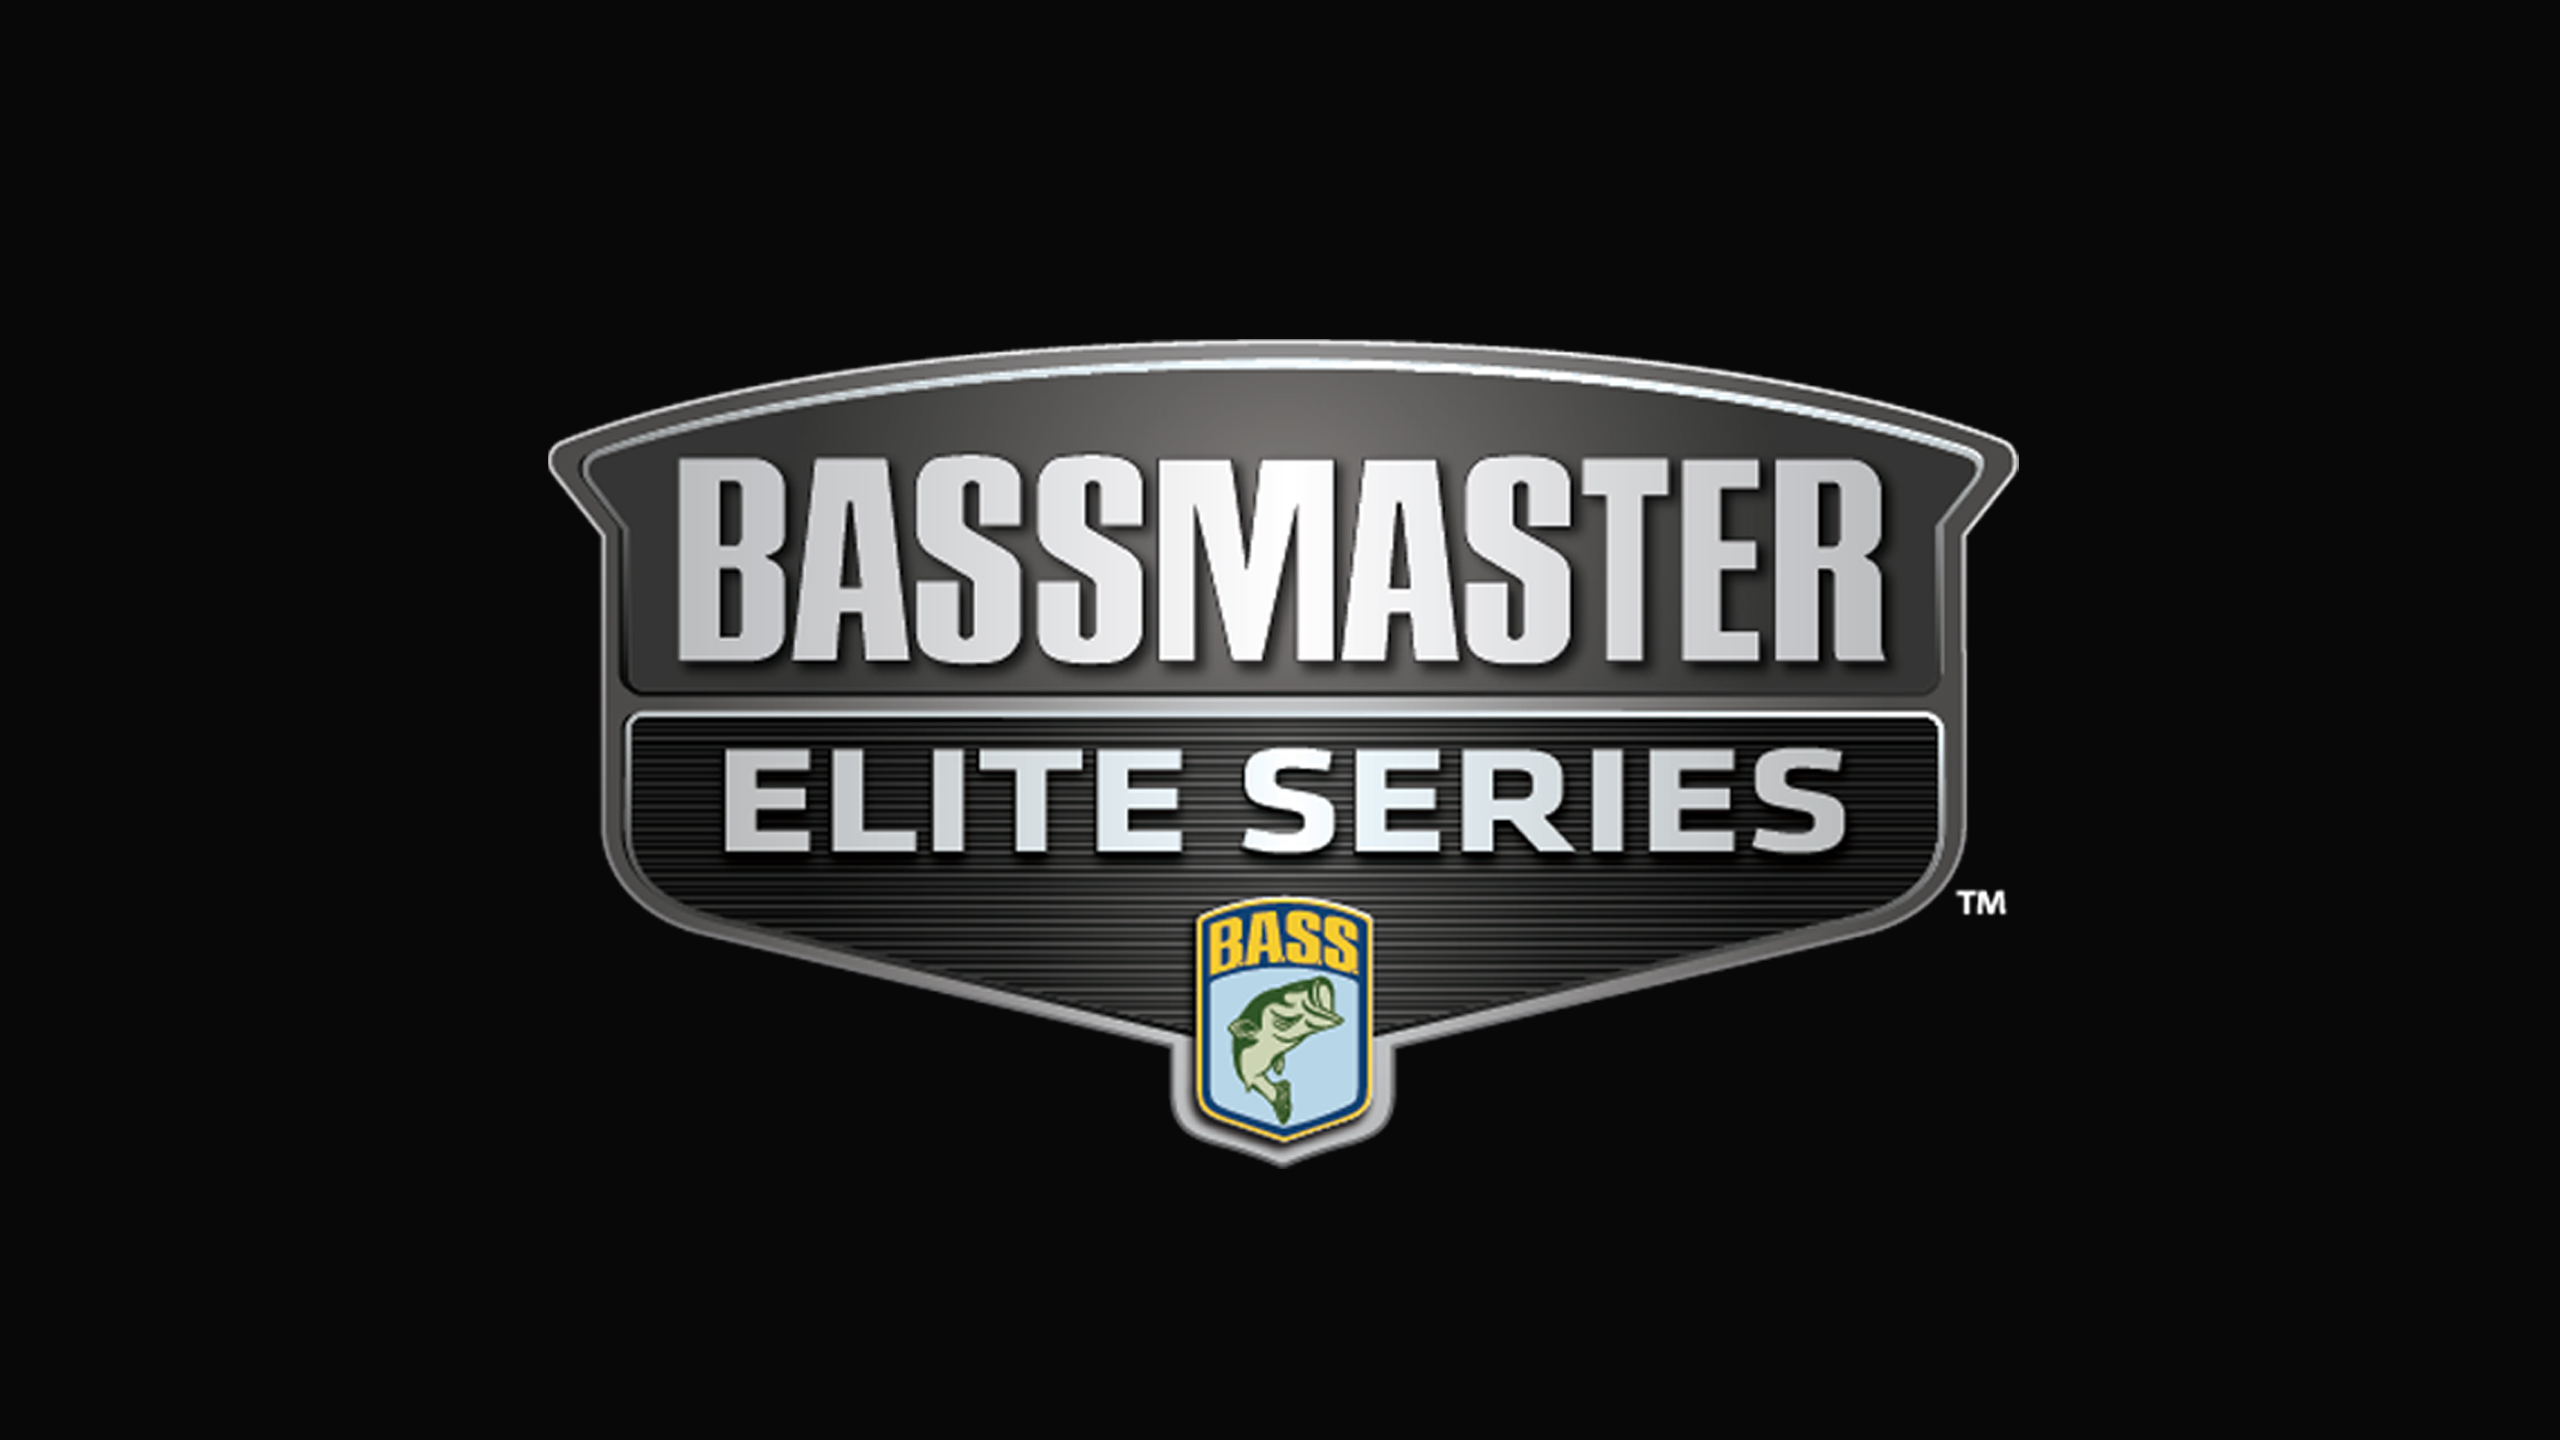 Bassmaster Elite Series at Lake Lanier